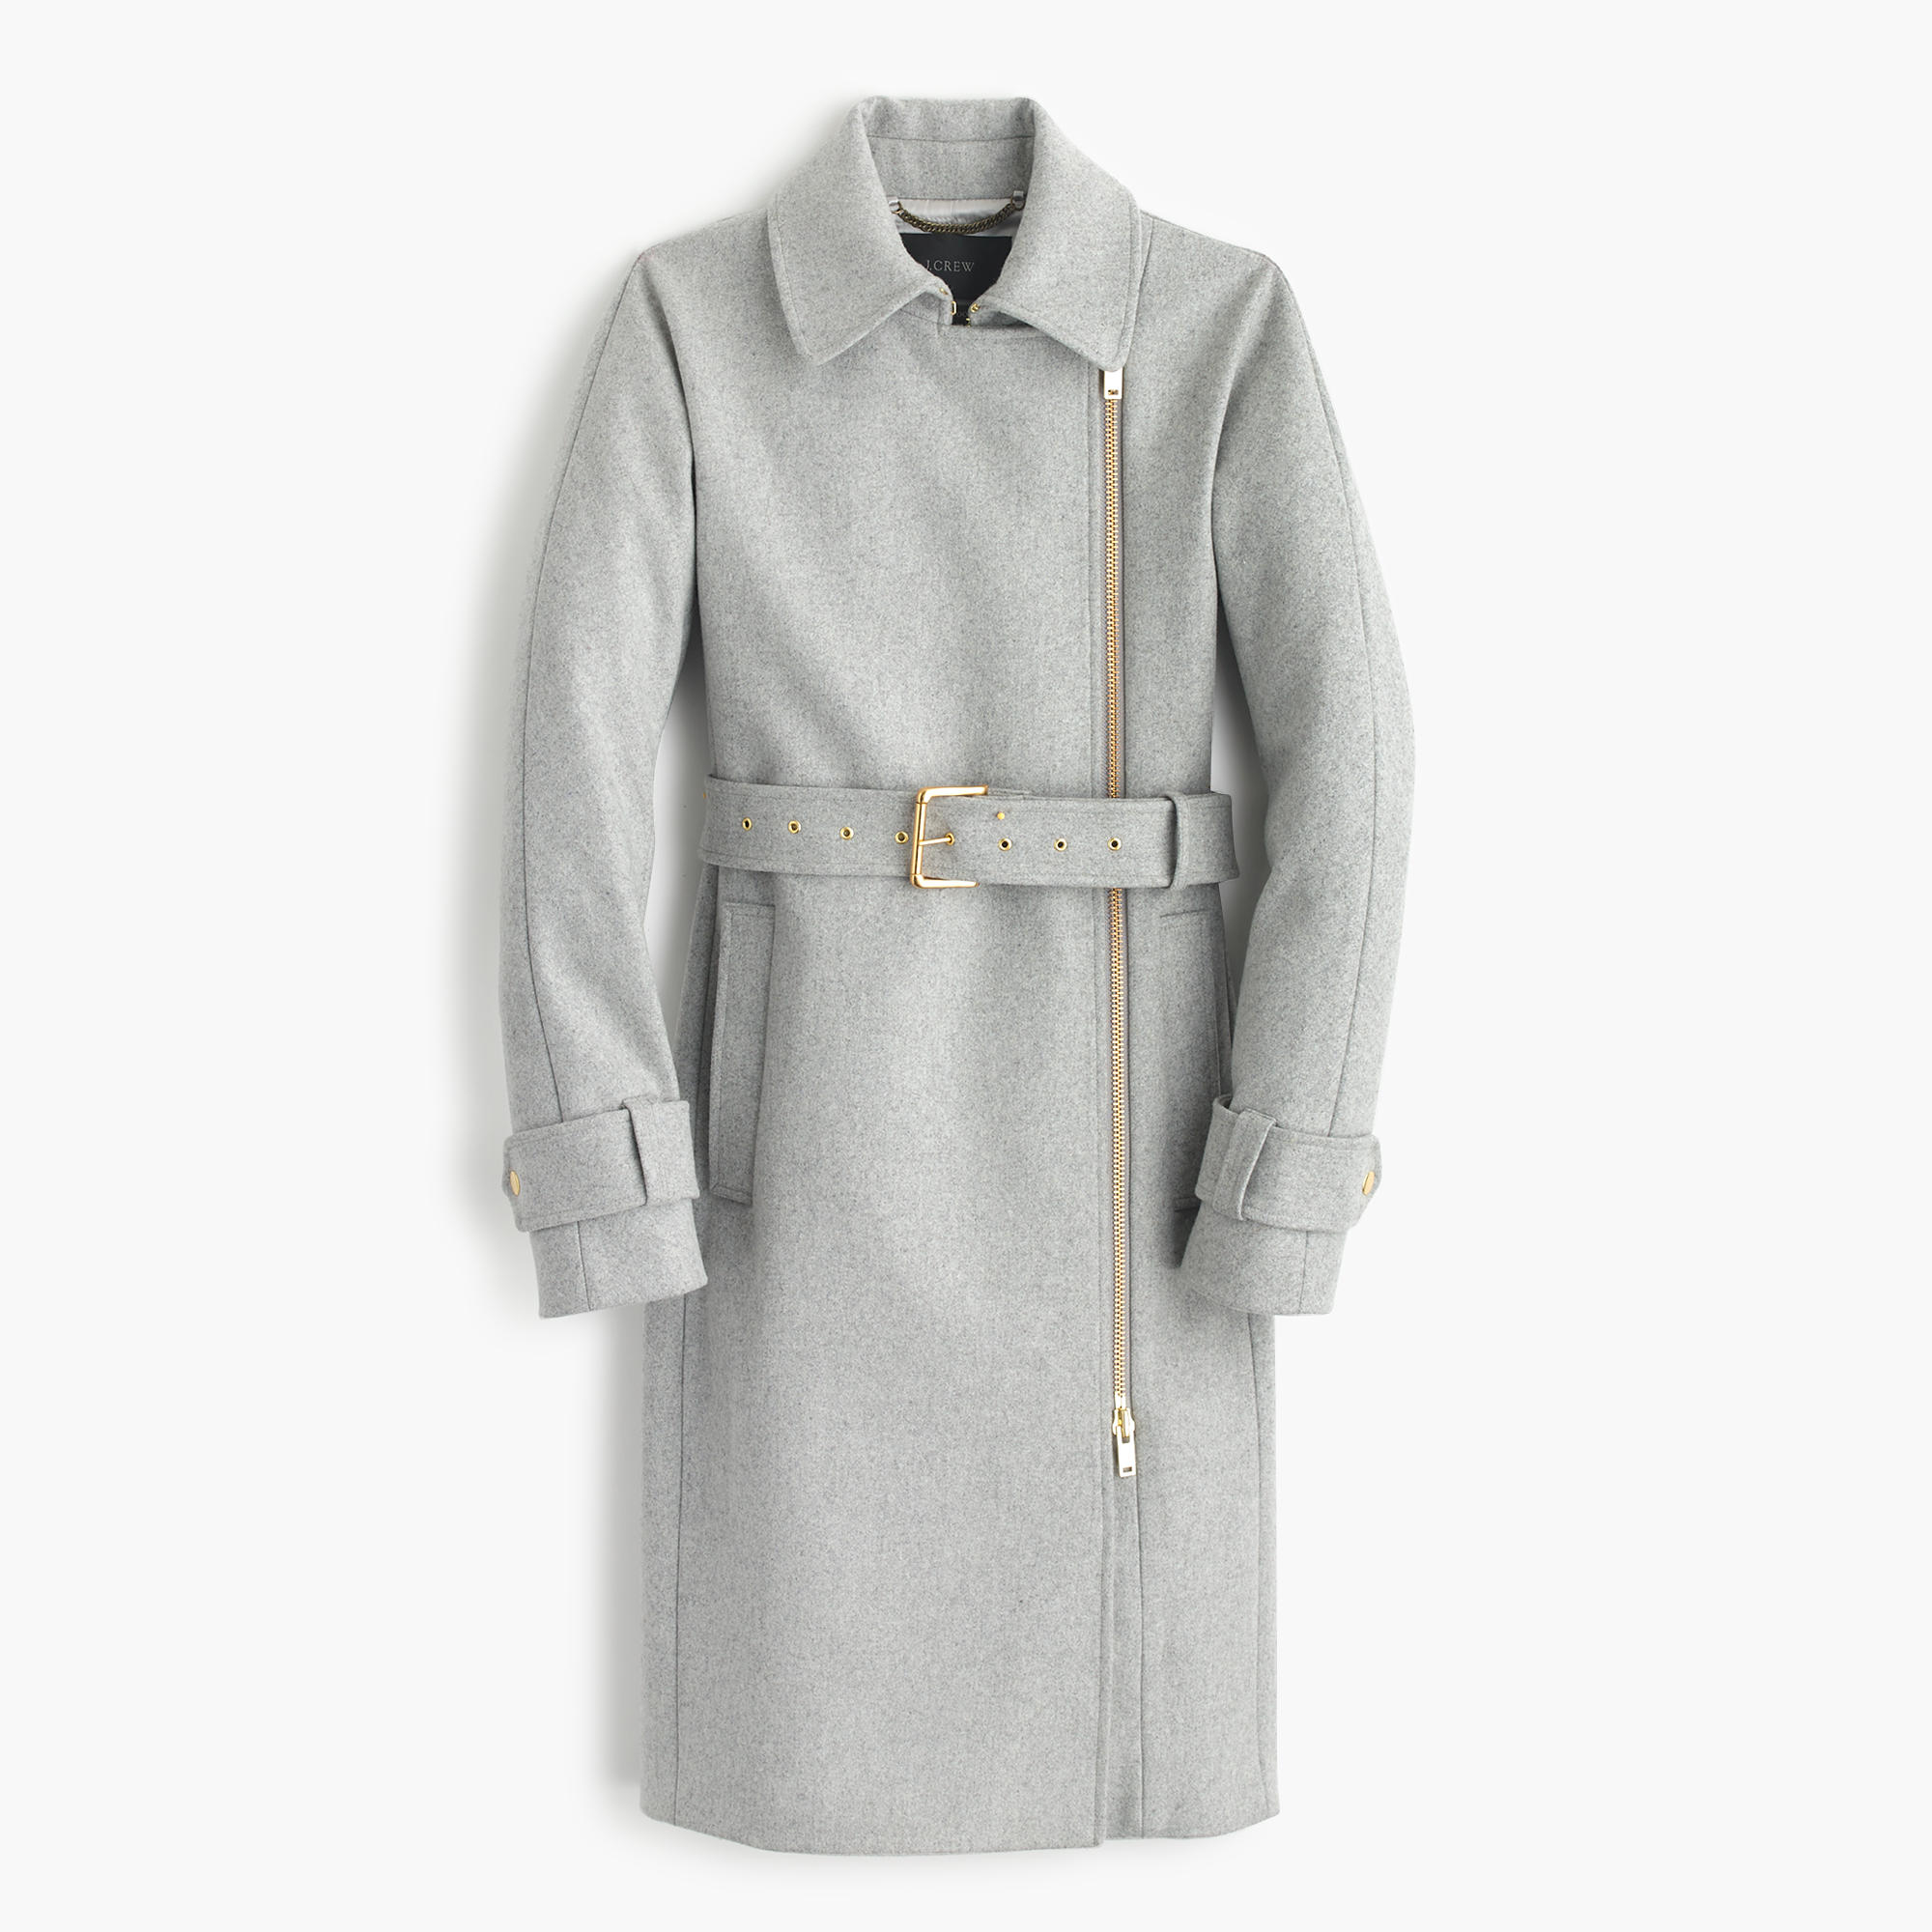 J.crew Belted Zip Trench Coat In Wool Melton in Gray | Lyst